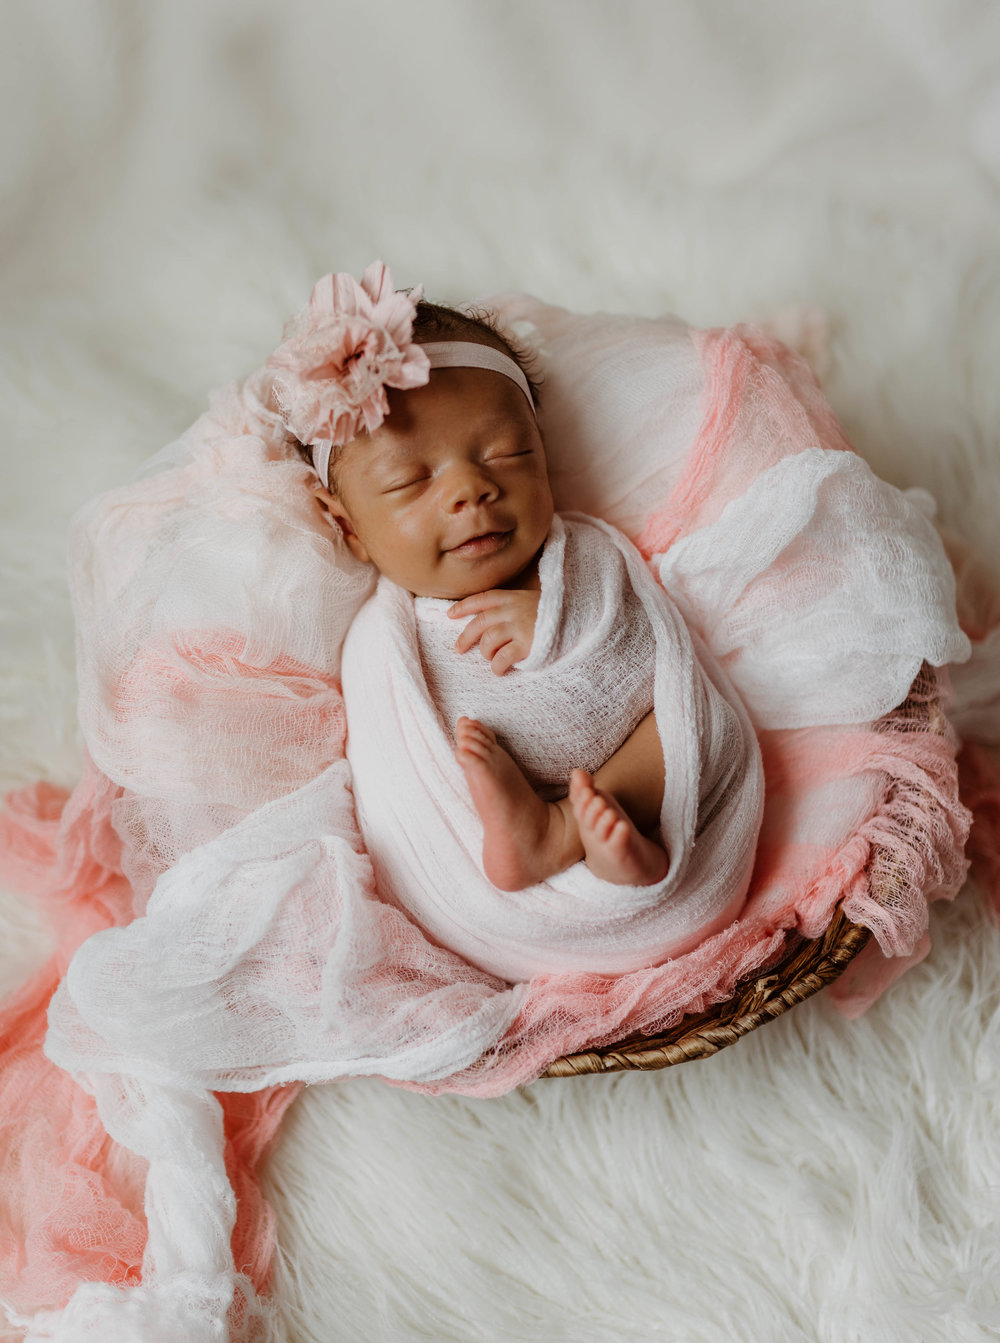 $350 - Lifestyle • Maternity • Newborn • Milestones- 2 hour session -- Your choice of in-home or outdoors -- Receive 30 hi-res digital photos to download -- Access to your online gallery for 60 days -- One 8x10 premium print of your choice -